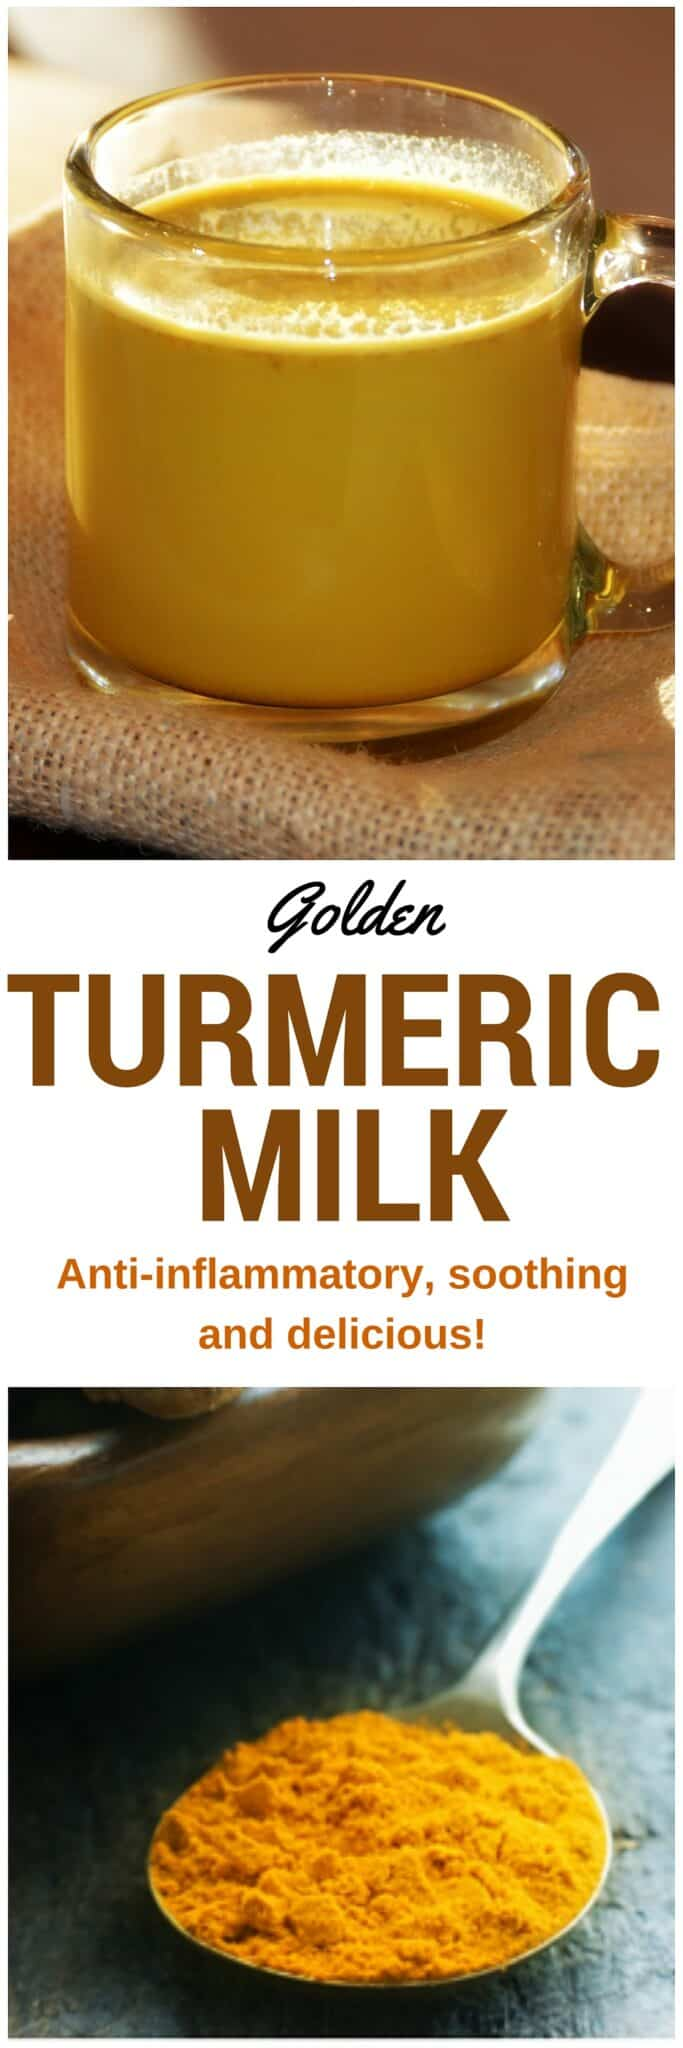 Golden Turmeric Milk - A cup before bedtime contains anti-inflammatory, anti-oxidant, and circulation-boosting properties in a warm, deliciously soothing drink. #antiinflammatory #beverage #goldenmilk #turmeric #jointpain #antioxidant #healthy